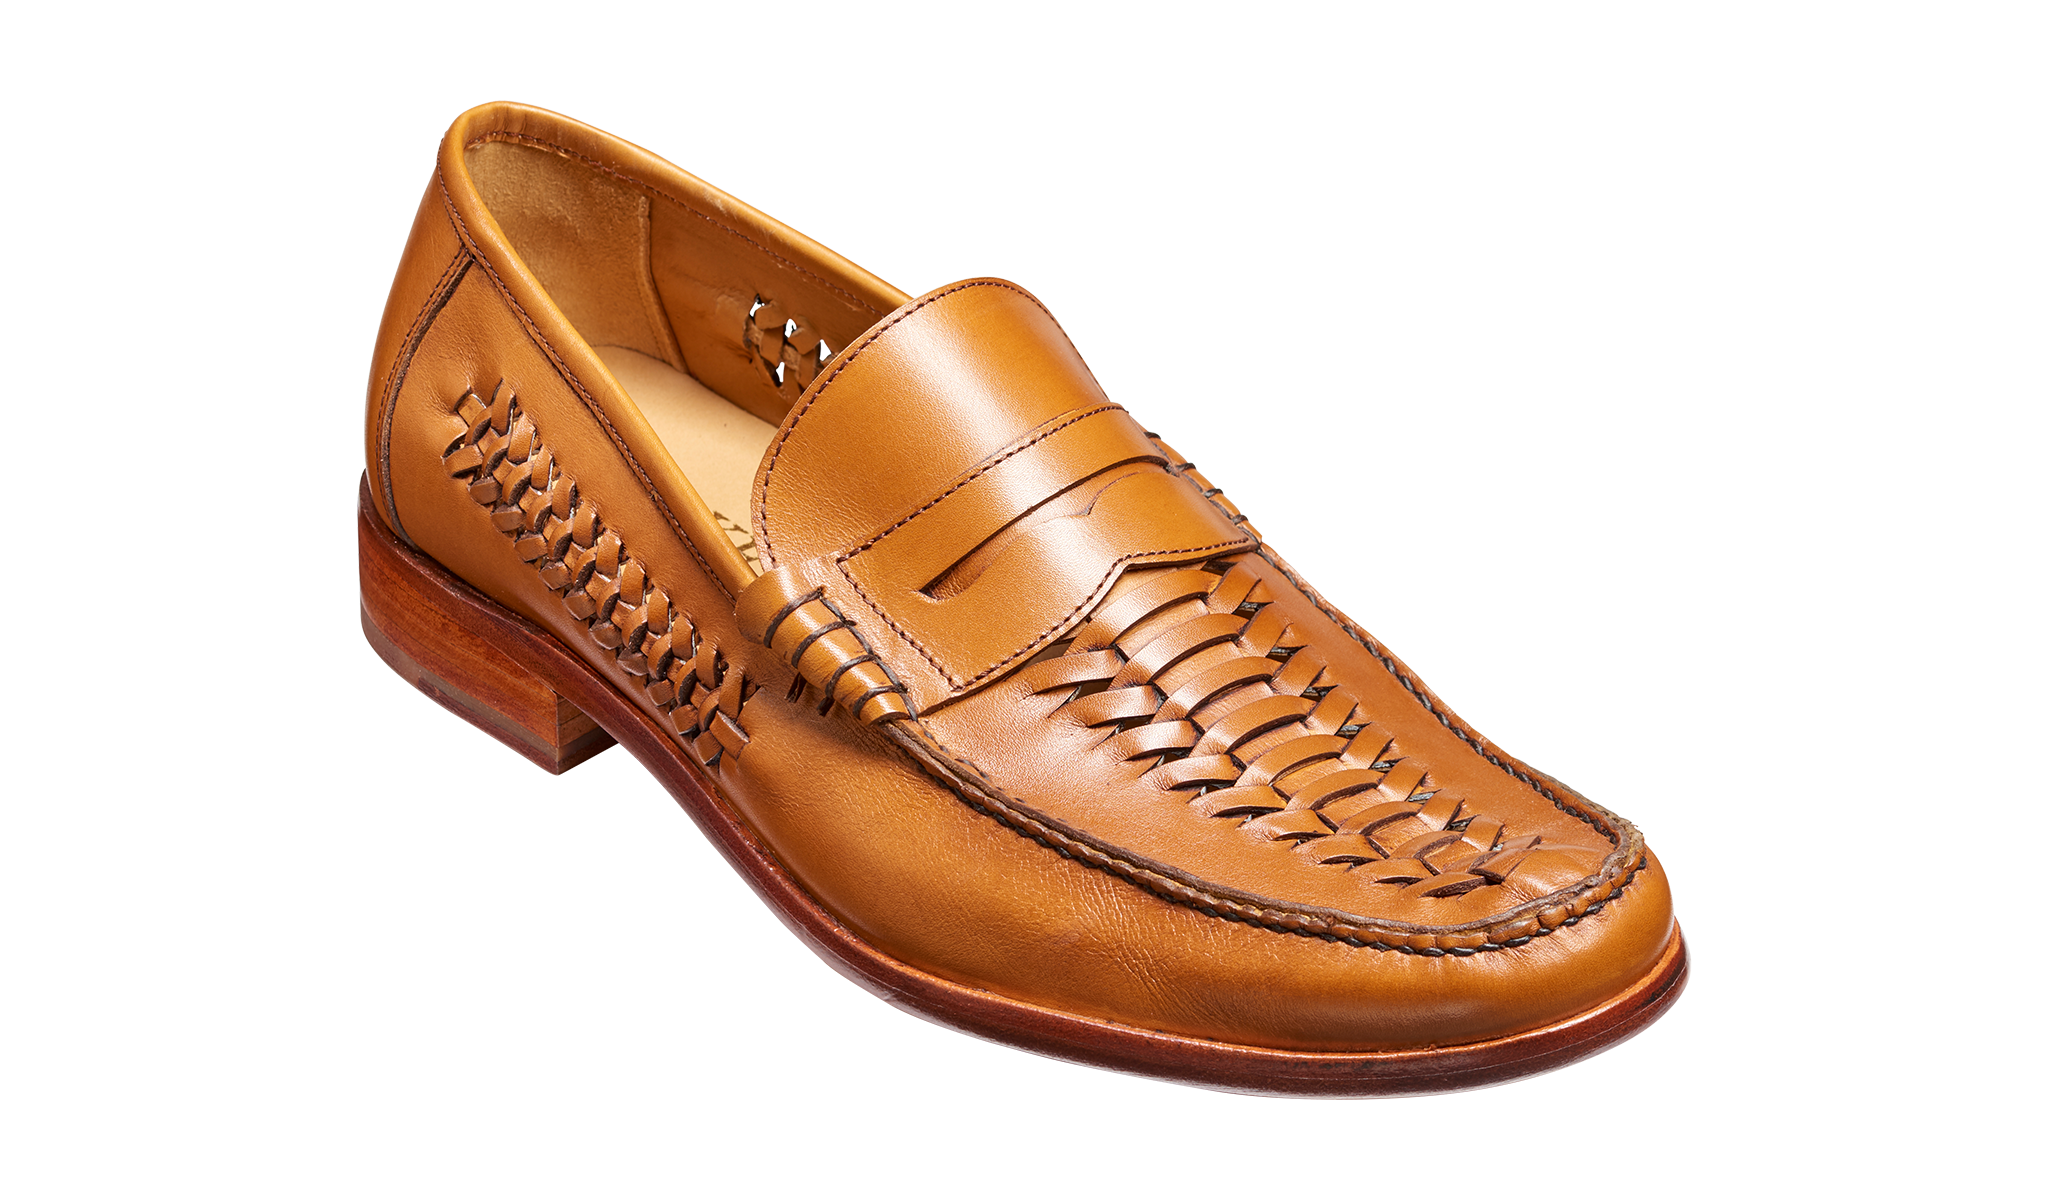 Jake - A men's loafer by Barker Shoes